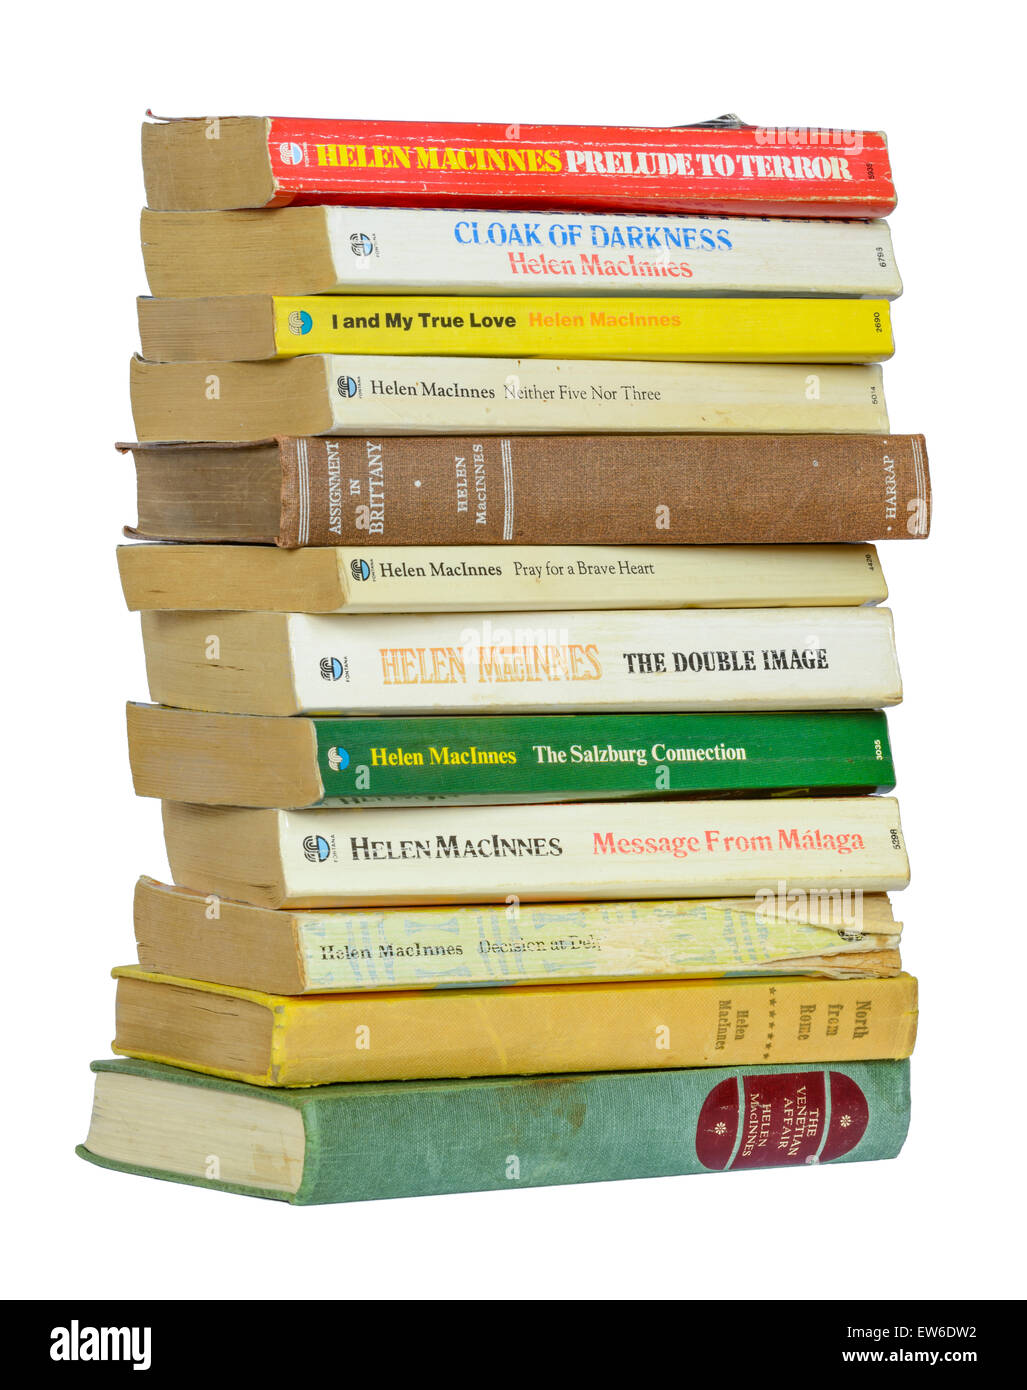 Books. Stack of old paperback books by author Helen MacInnes, on a white background. - Stock Image